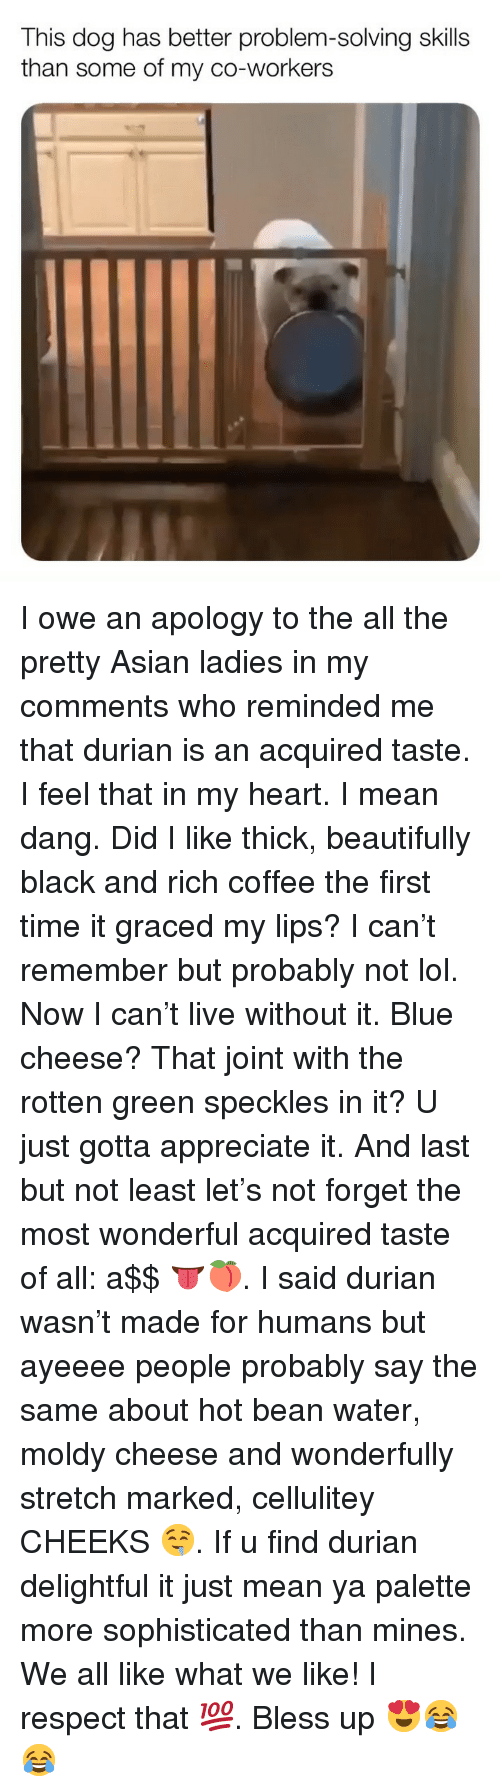 Asian, Bless Up, and Lol: This dog has better problem-solving skills  than some of my co-workers I owe an apology to the all the pretty Asian ladies in my comments who reminded me that durian is an acquired taste. I feel that in my heart. I mean dang. Did I like thick, beautifully black and rich coffee the first time it graced my lips? I can't remember but probably not lol. Now I can't live without it. Blue cheese? That joint with the rotten green speckles in it? U just gotta appreciate it. And last but not least let's not forget the most wonderful acquired taste of all: a$$ 👅🍑. I said durian wasn't made for humans but ayeeee people probably say the same about hot bean water, moldy cheese and wonderfully stretch marked, cellulitey CHEEKS 🤤. If u find durian delightful it just mean ya palette more sophisticated than mines. We all like what we like! I respect that 💯. Bless up 😍😂😂